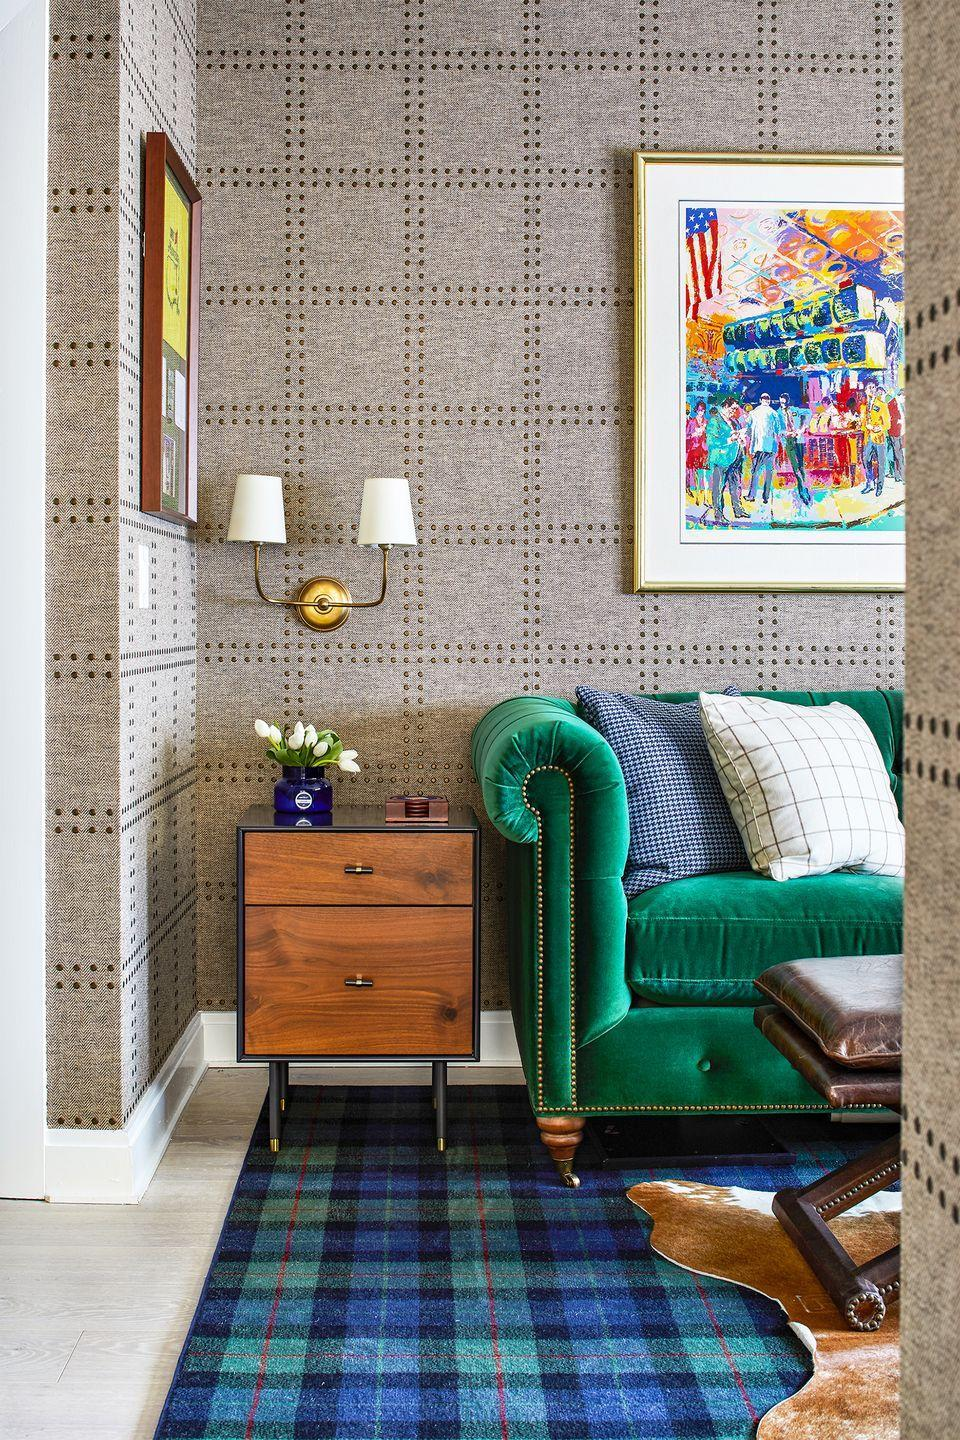 """<p>In sitting room designed by <a href=""""http://cameronruppertinteriors.com"""" rel=""""nofollow noopener"""" target=""""_blank"""" data-ylk=""""slk:Cameron Ruppert Interiors"""" class=""""link rapid-noclick-resp"""">Cameron Ruppert Interiors</a>, the pearlized ink dots on Phillip Jeffries' Rivets wallcovering resemble nailheads, a look reflected in the actual metal studs on the green velvet sofa. So when it doubt, opt for a printed wallpaper that creates the optical illusion of texture.</p>"""